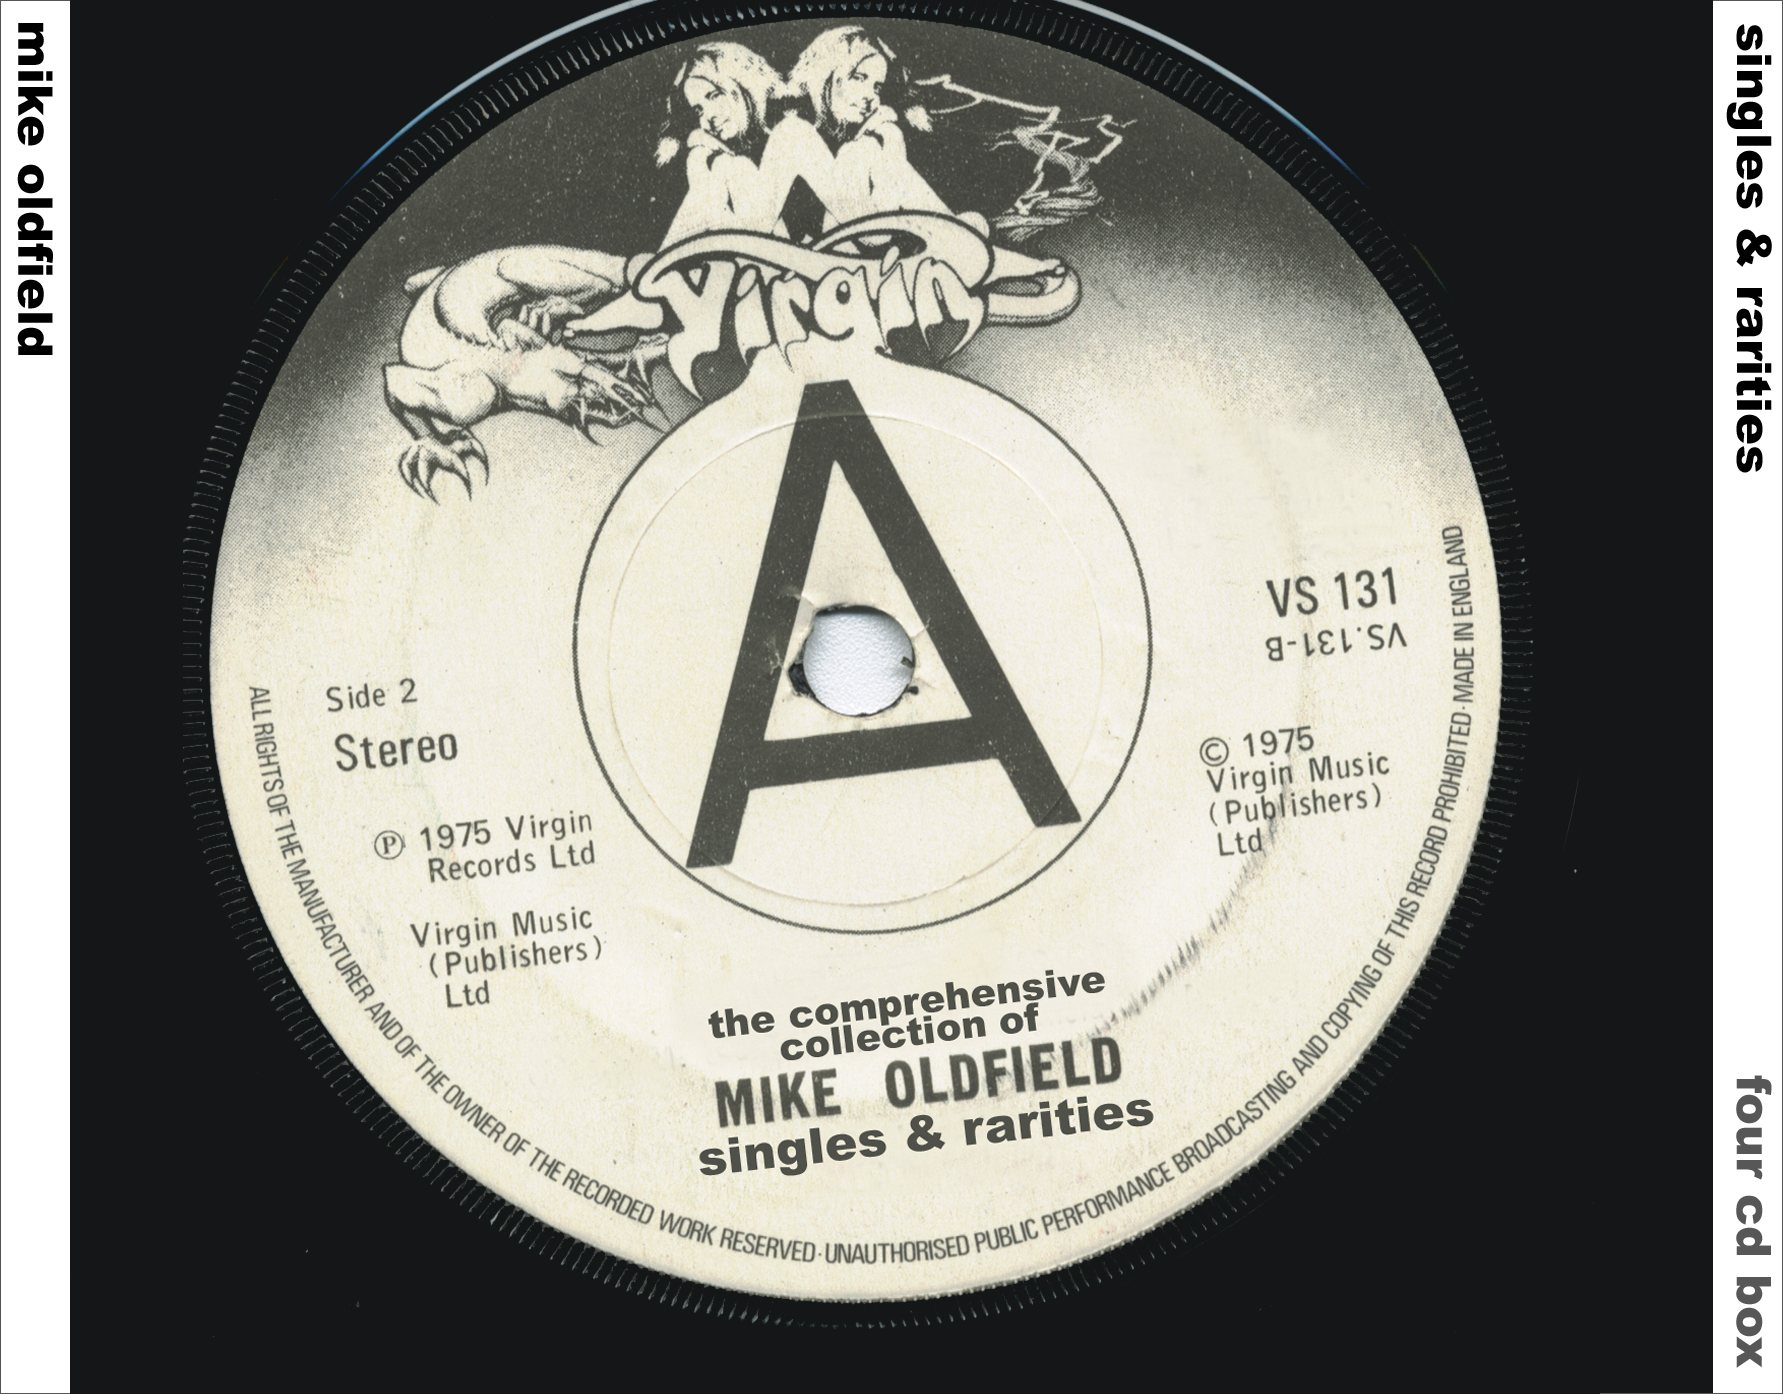 oldfield single personals This page is a singles discography for the musician mike oldfield contents 1  singles 2 extended plays 3 other singles 4 references 5 external links.